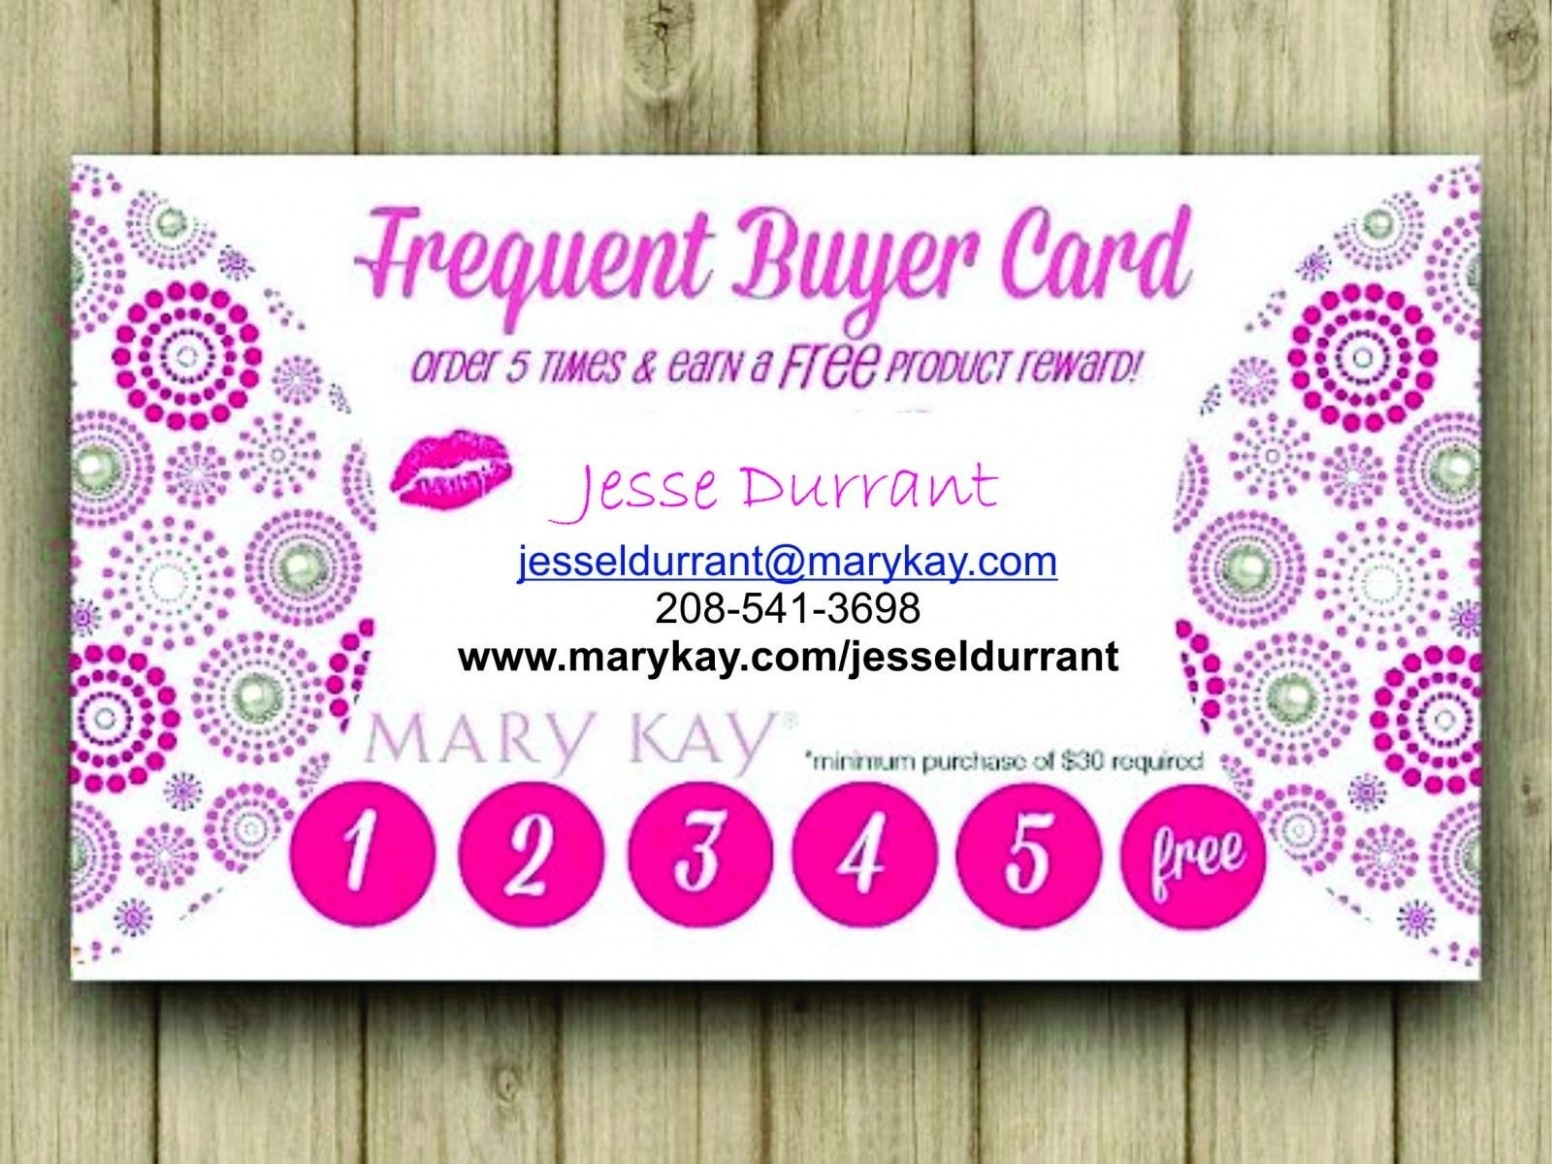 Mary Kay Business Cards Malaysia | Business Cards - Free Printable Mary Kay Business Cards